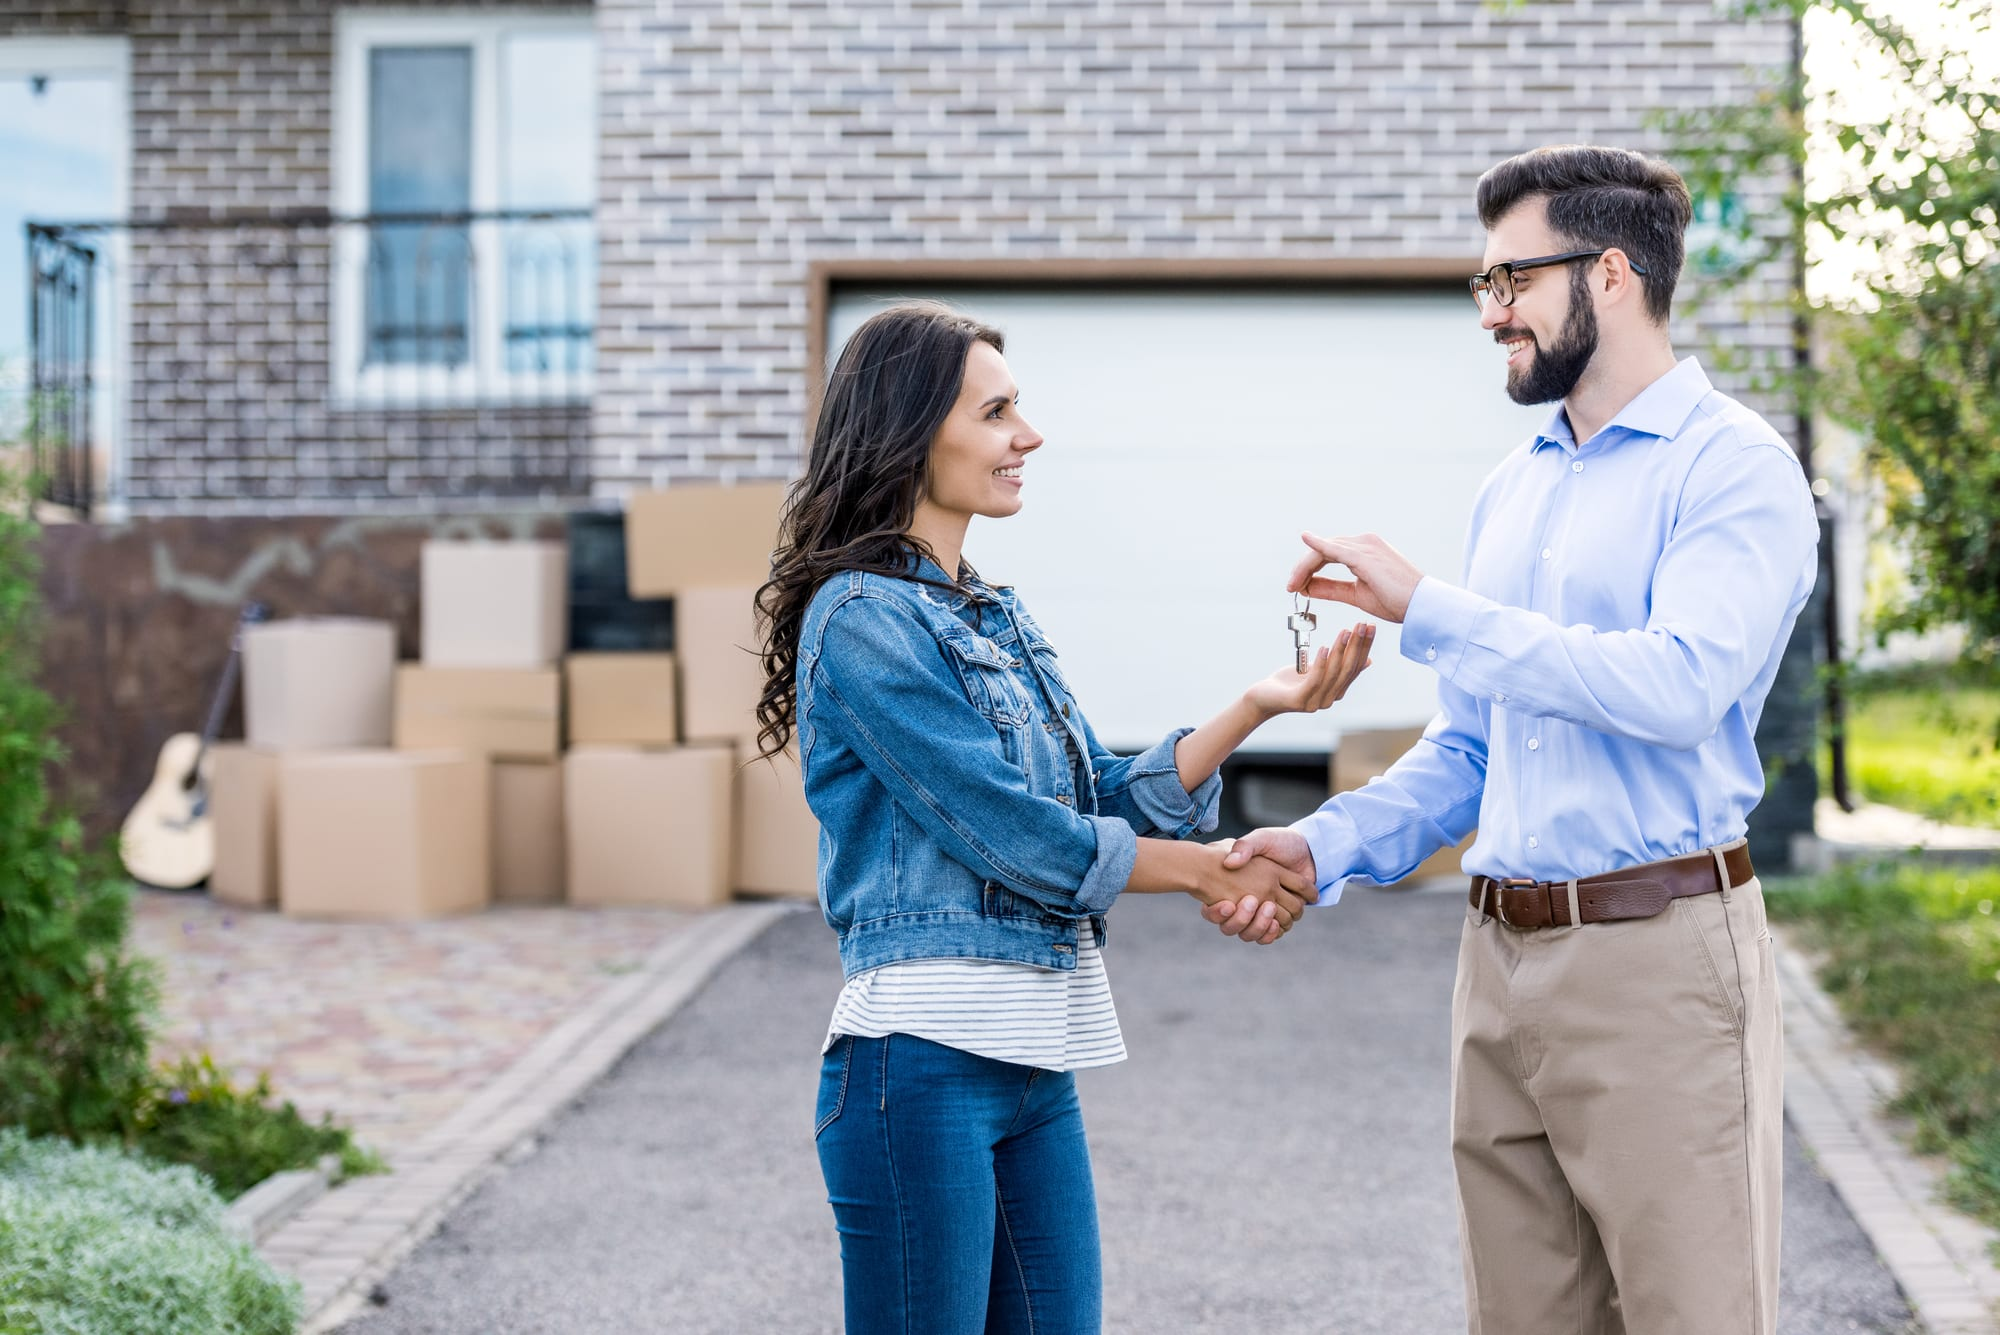 Woman shaking hands with man in front of house, he hands her house keys